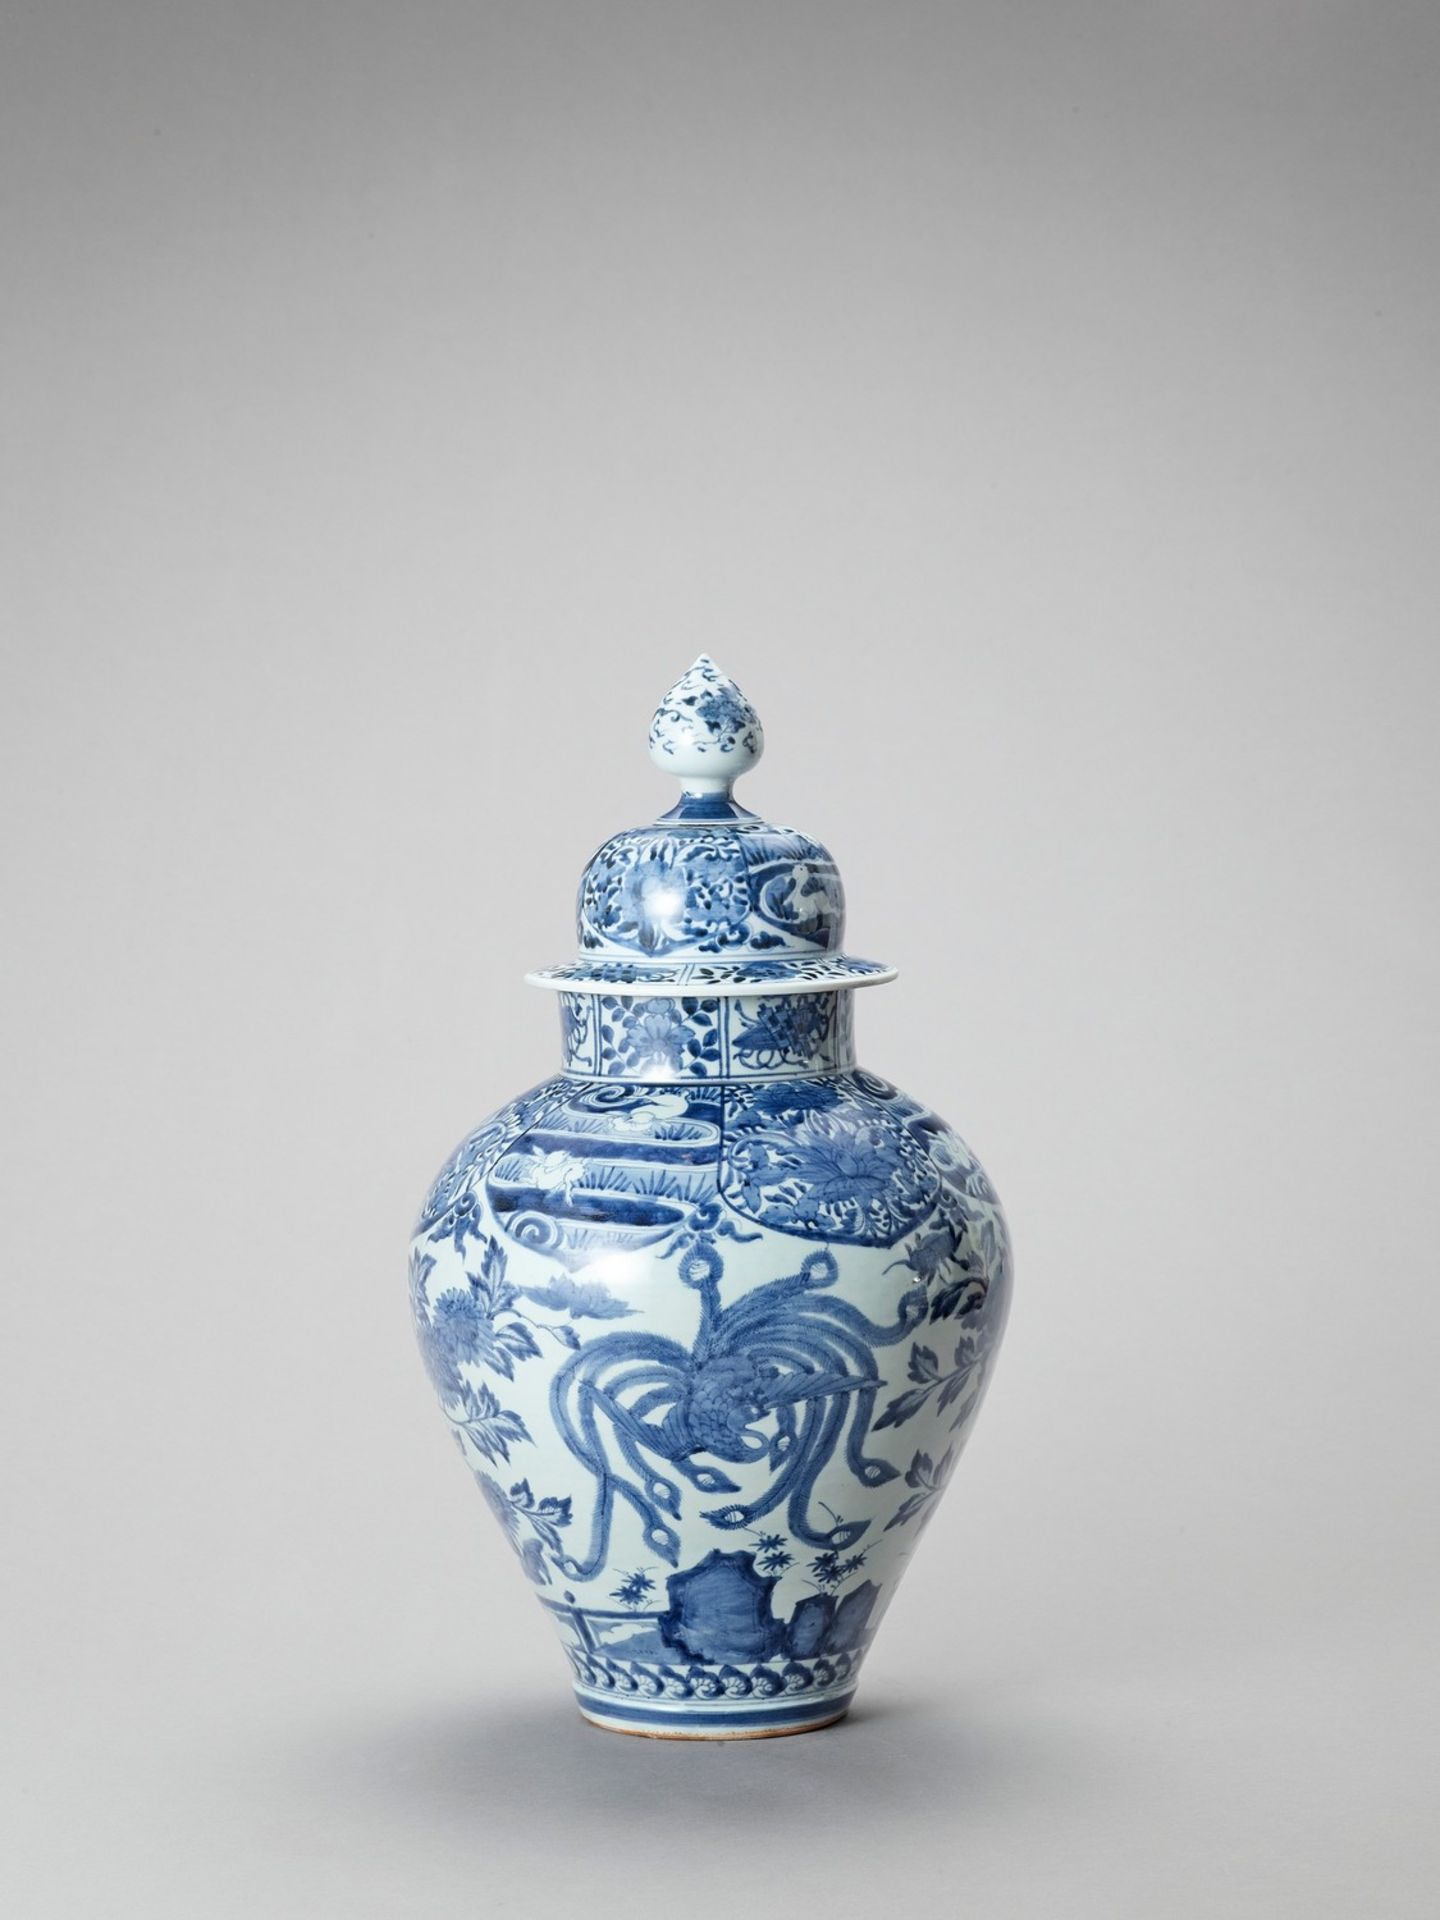 A LARGE BLUE AND WHITE PORCELAIN JAR AND COVER - Image 3 of 6